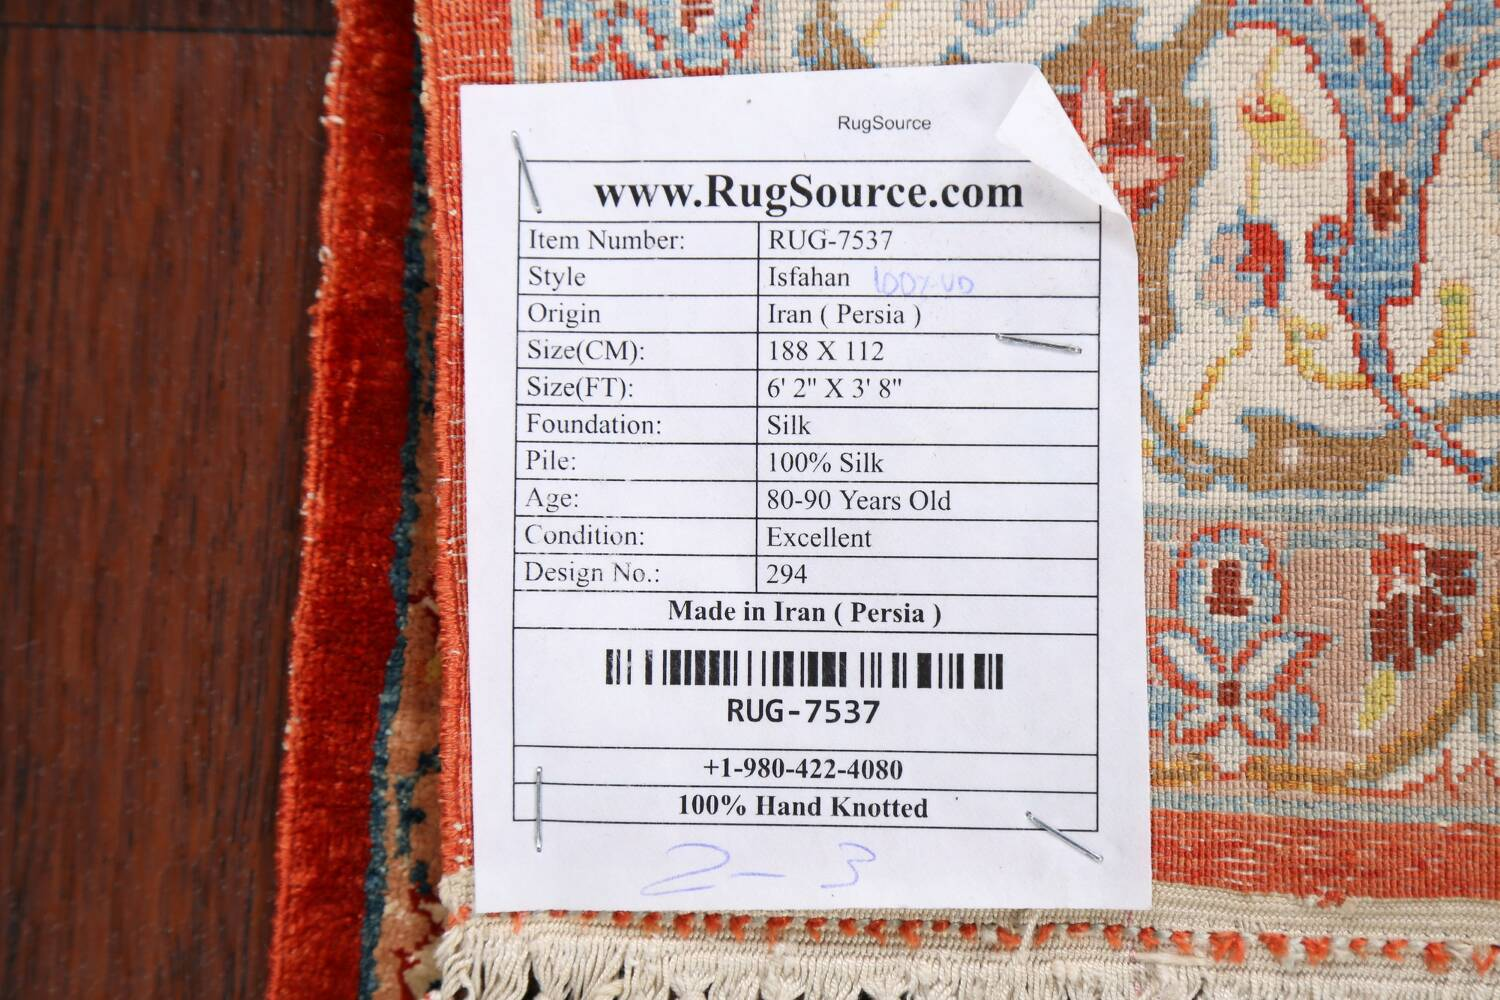 Antique 100% Vegetable Dye Isfahan Persian Area Rug 4x6 image 21